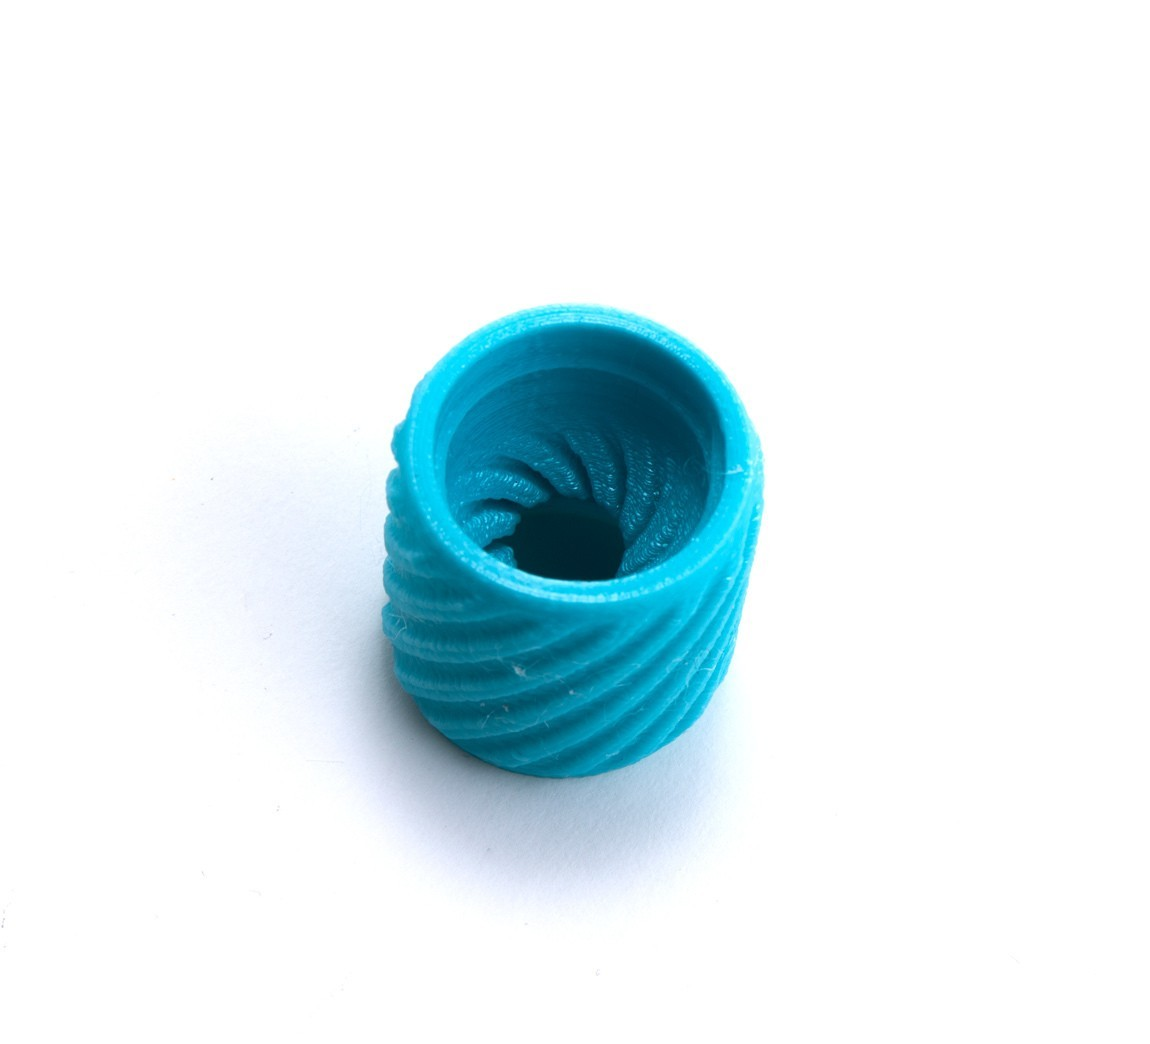 262a33ea188a6839ce315ddeaf32be3c_1449194828627_NMD000559-8.jpg Download free STL file Water Twister • 3D printer model, FerryTeacher